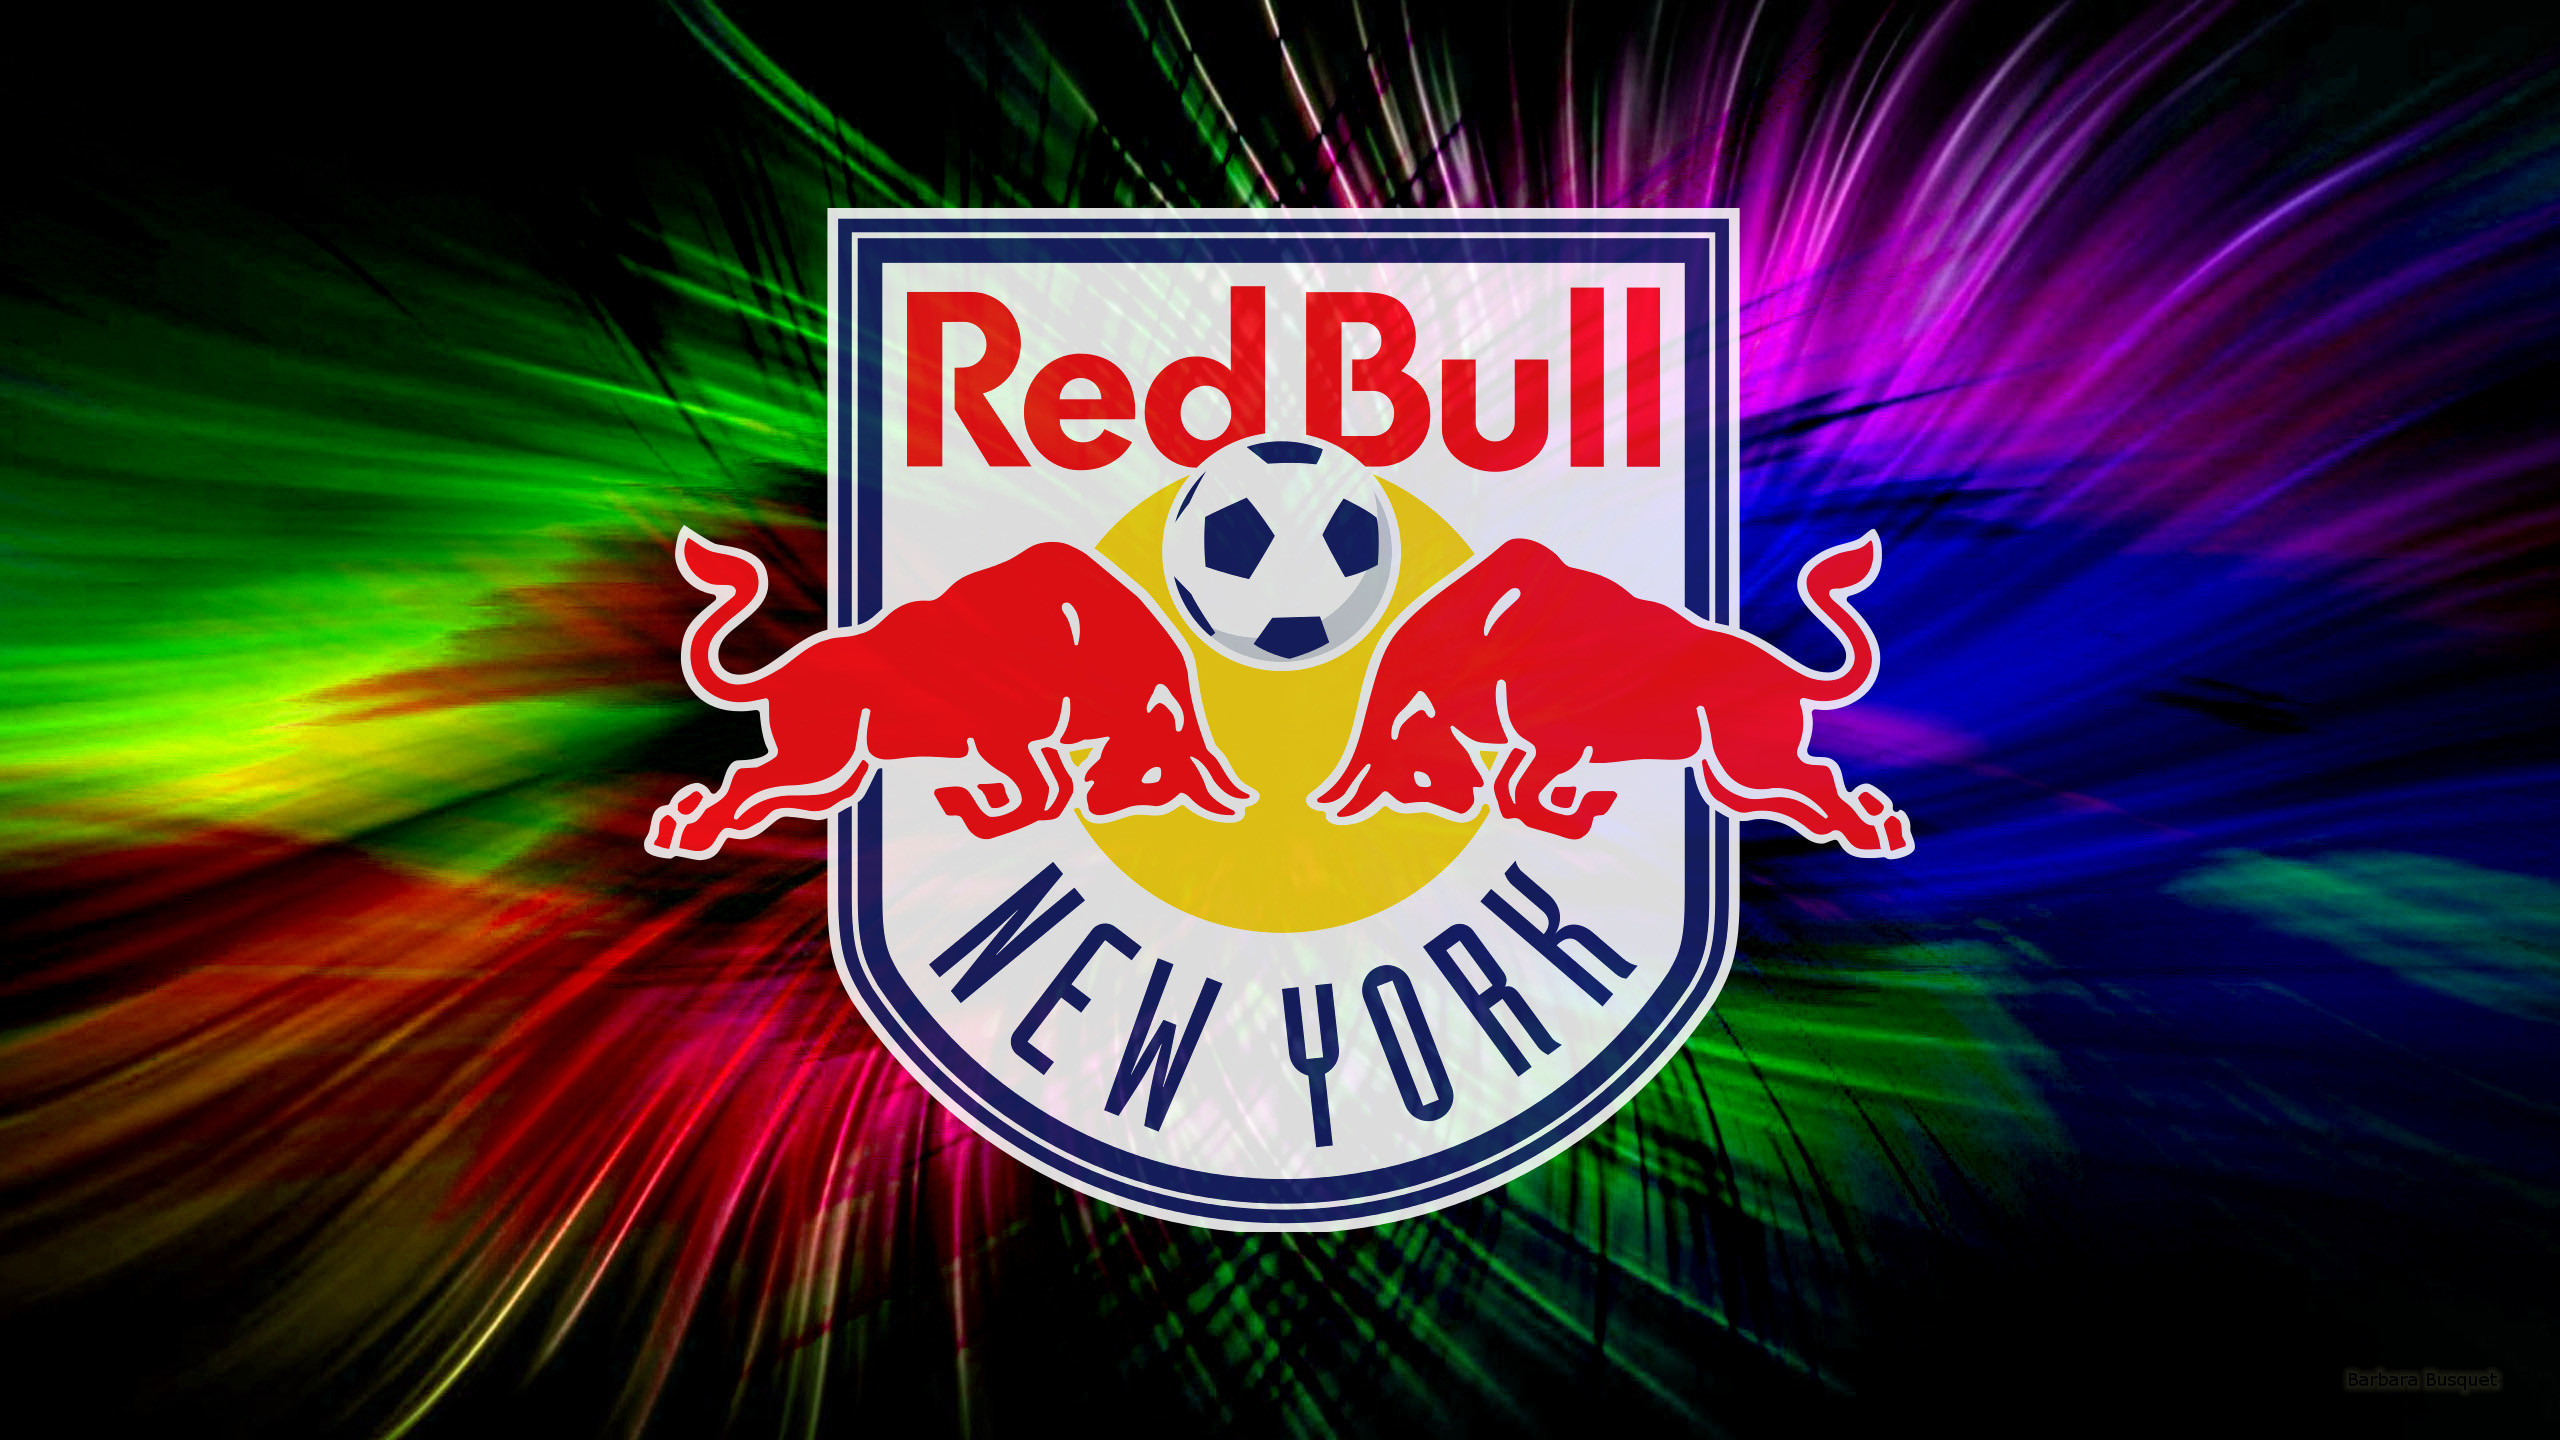 2560x1440 Colorful New York Red Bulls wallpaper